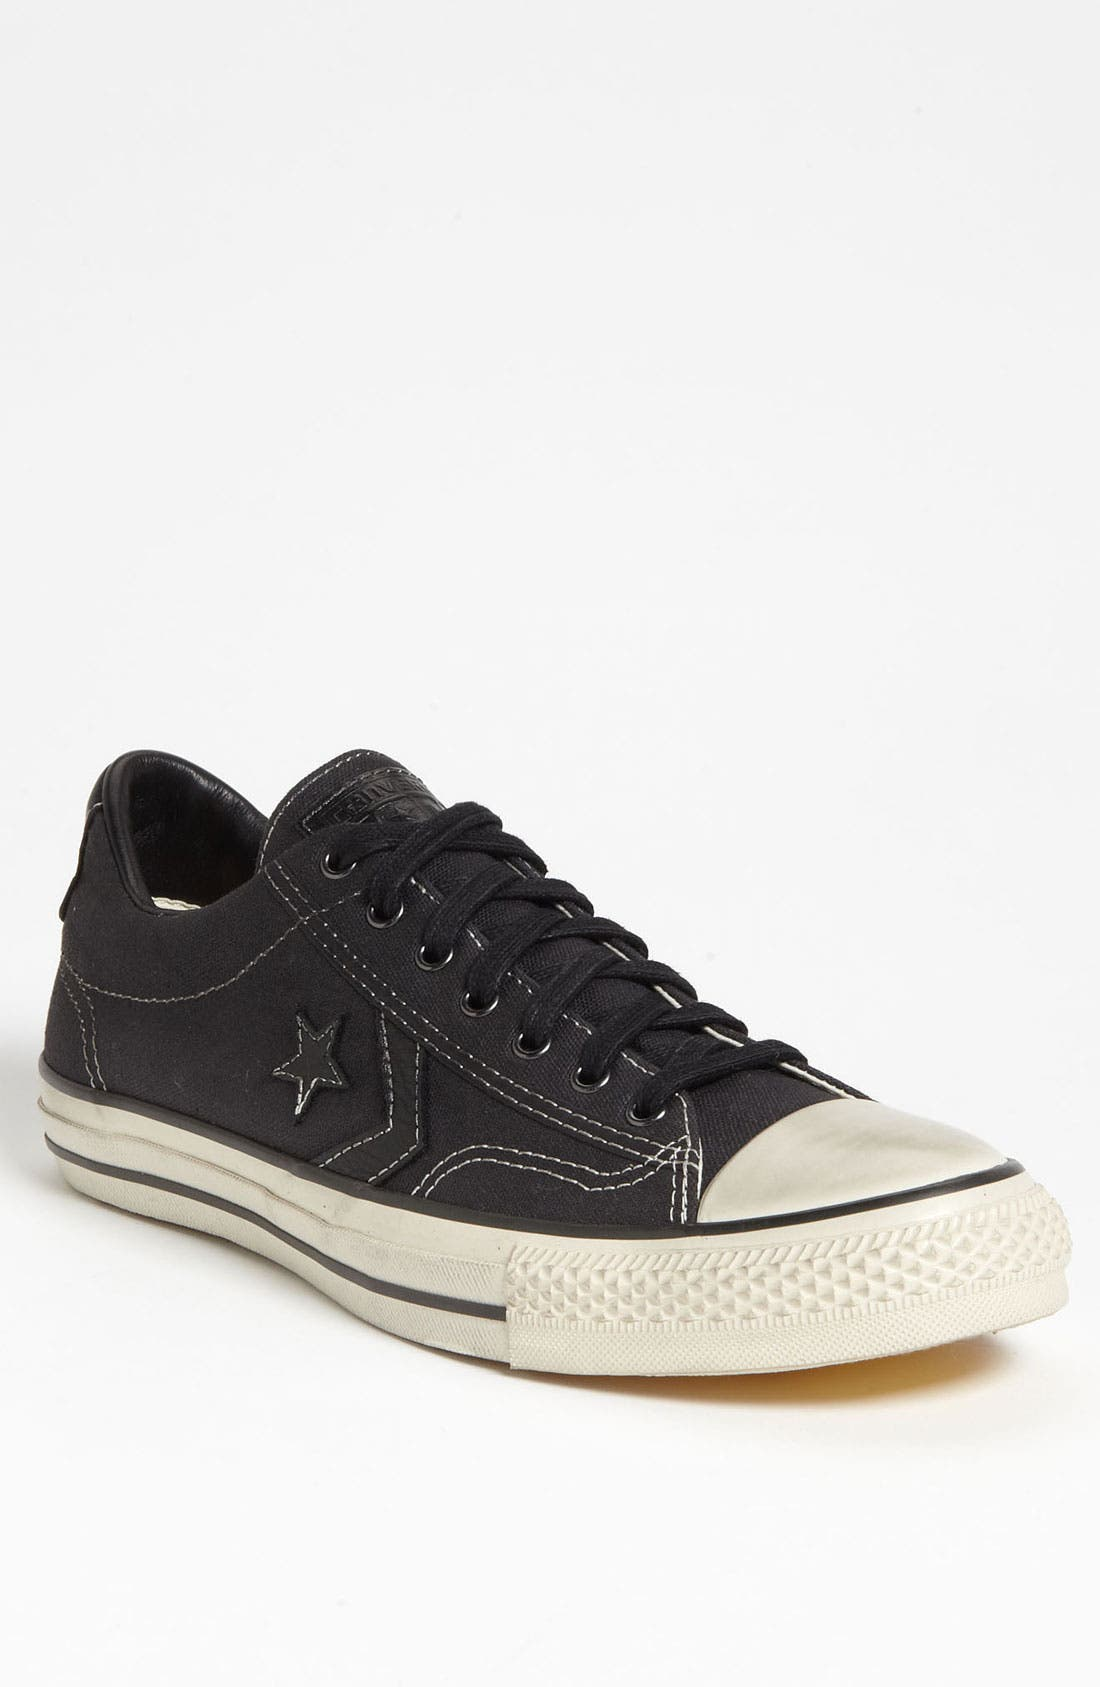 Alternate Image 1 Selected - Converse by John Varvatos 'Star Player EV' Sneaker (Men)